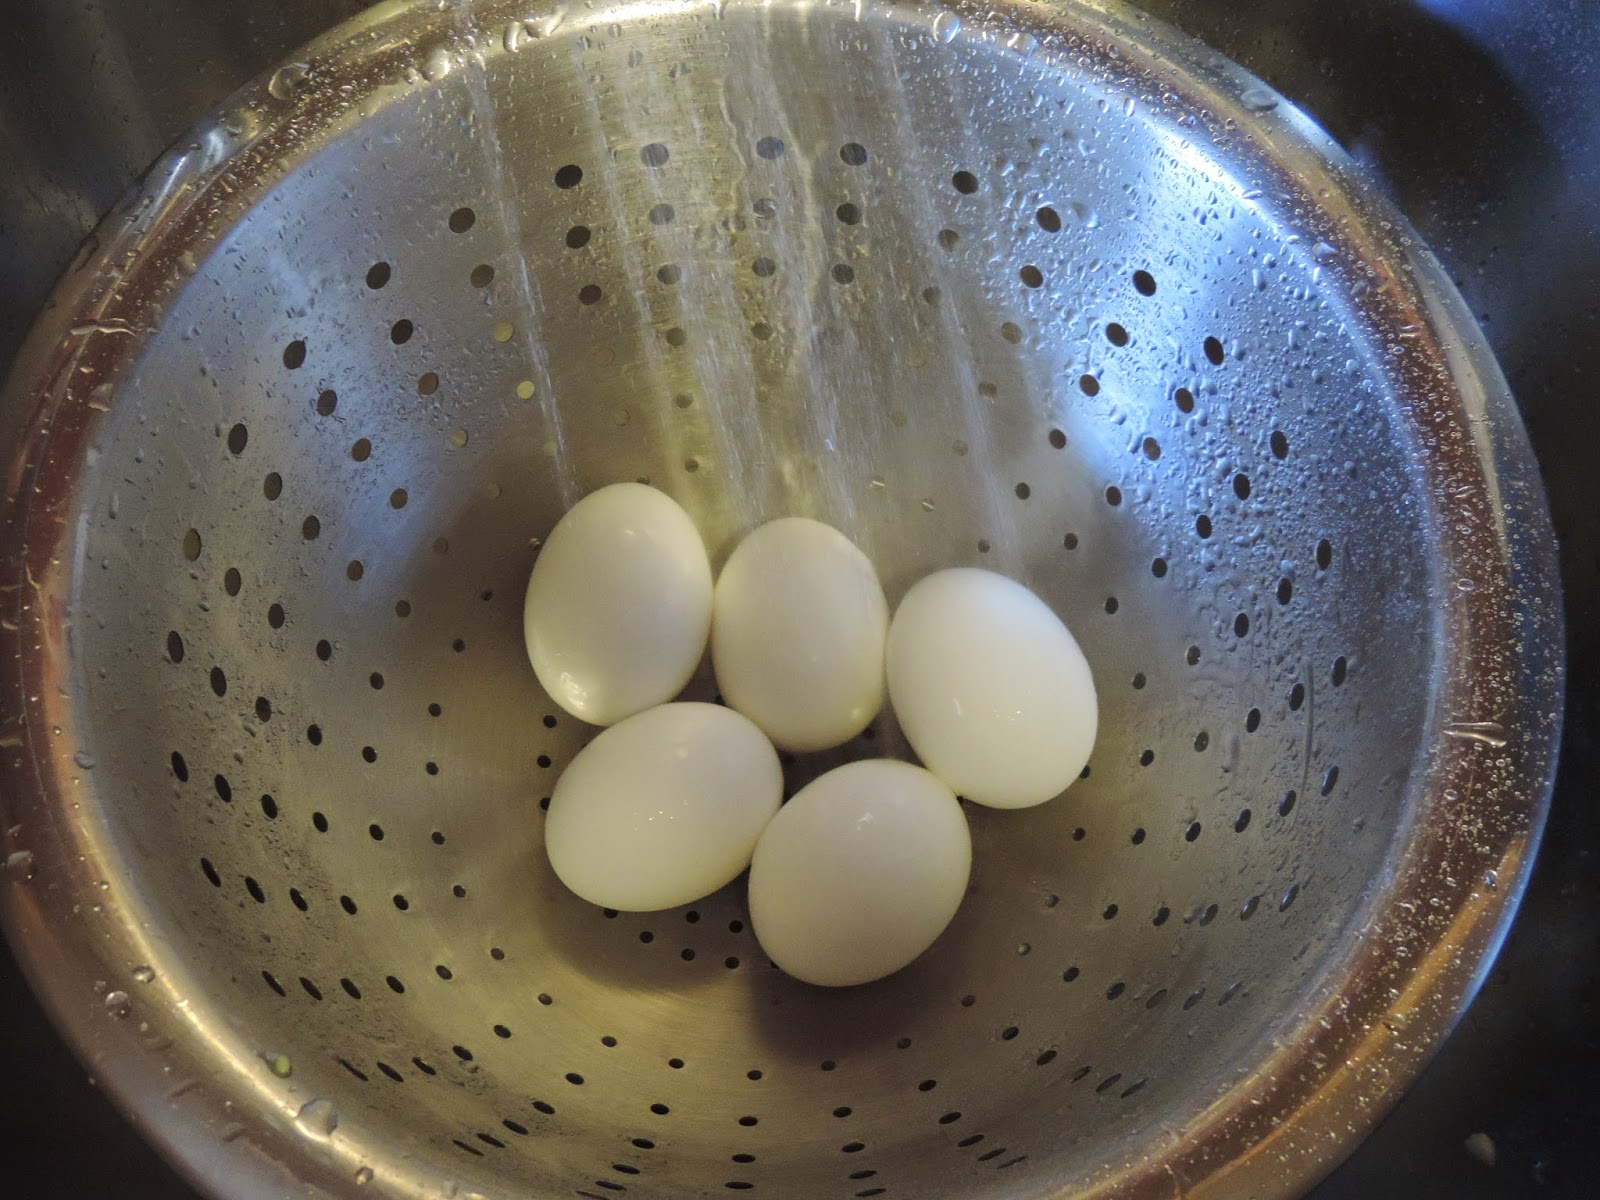 Cold water being poured over the hard boiled eggs.